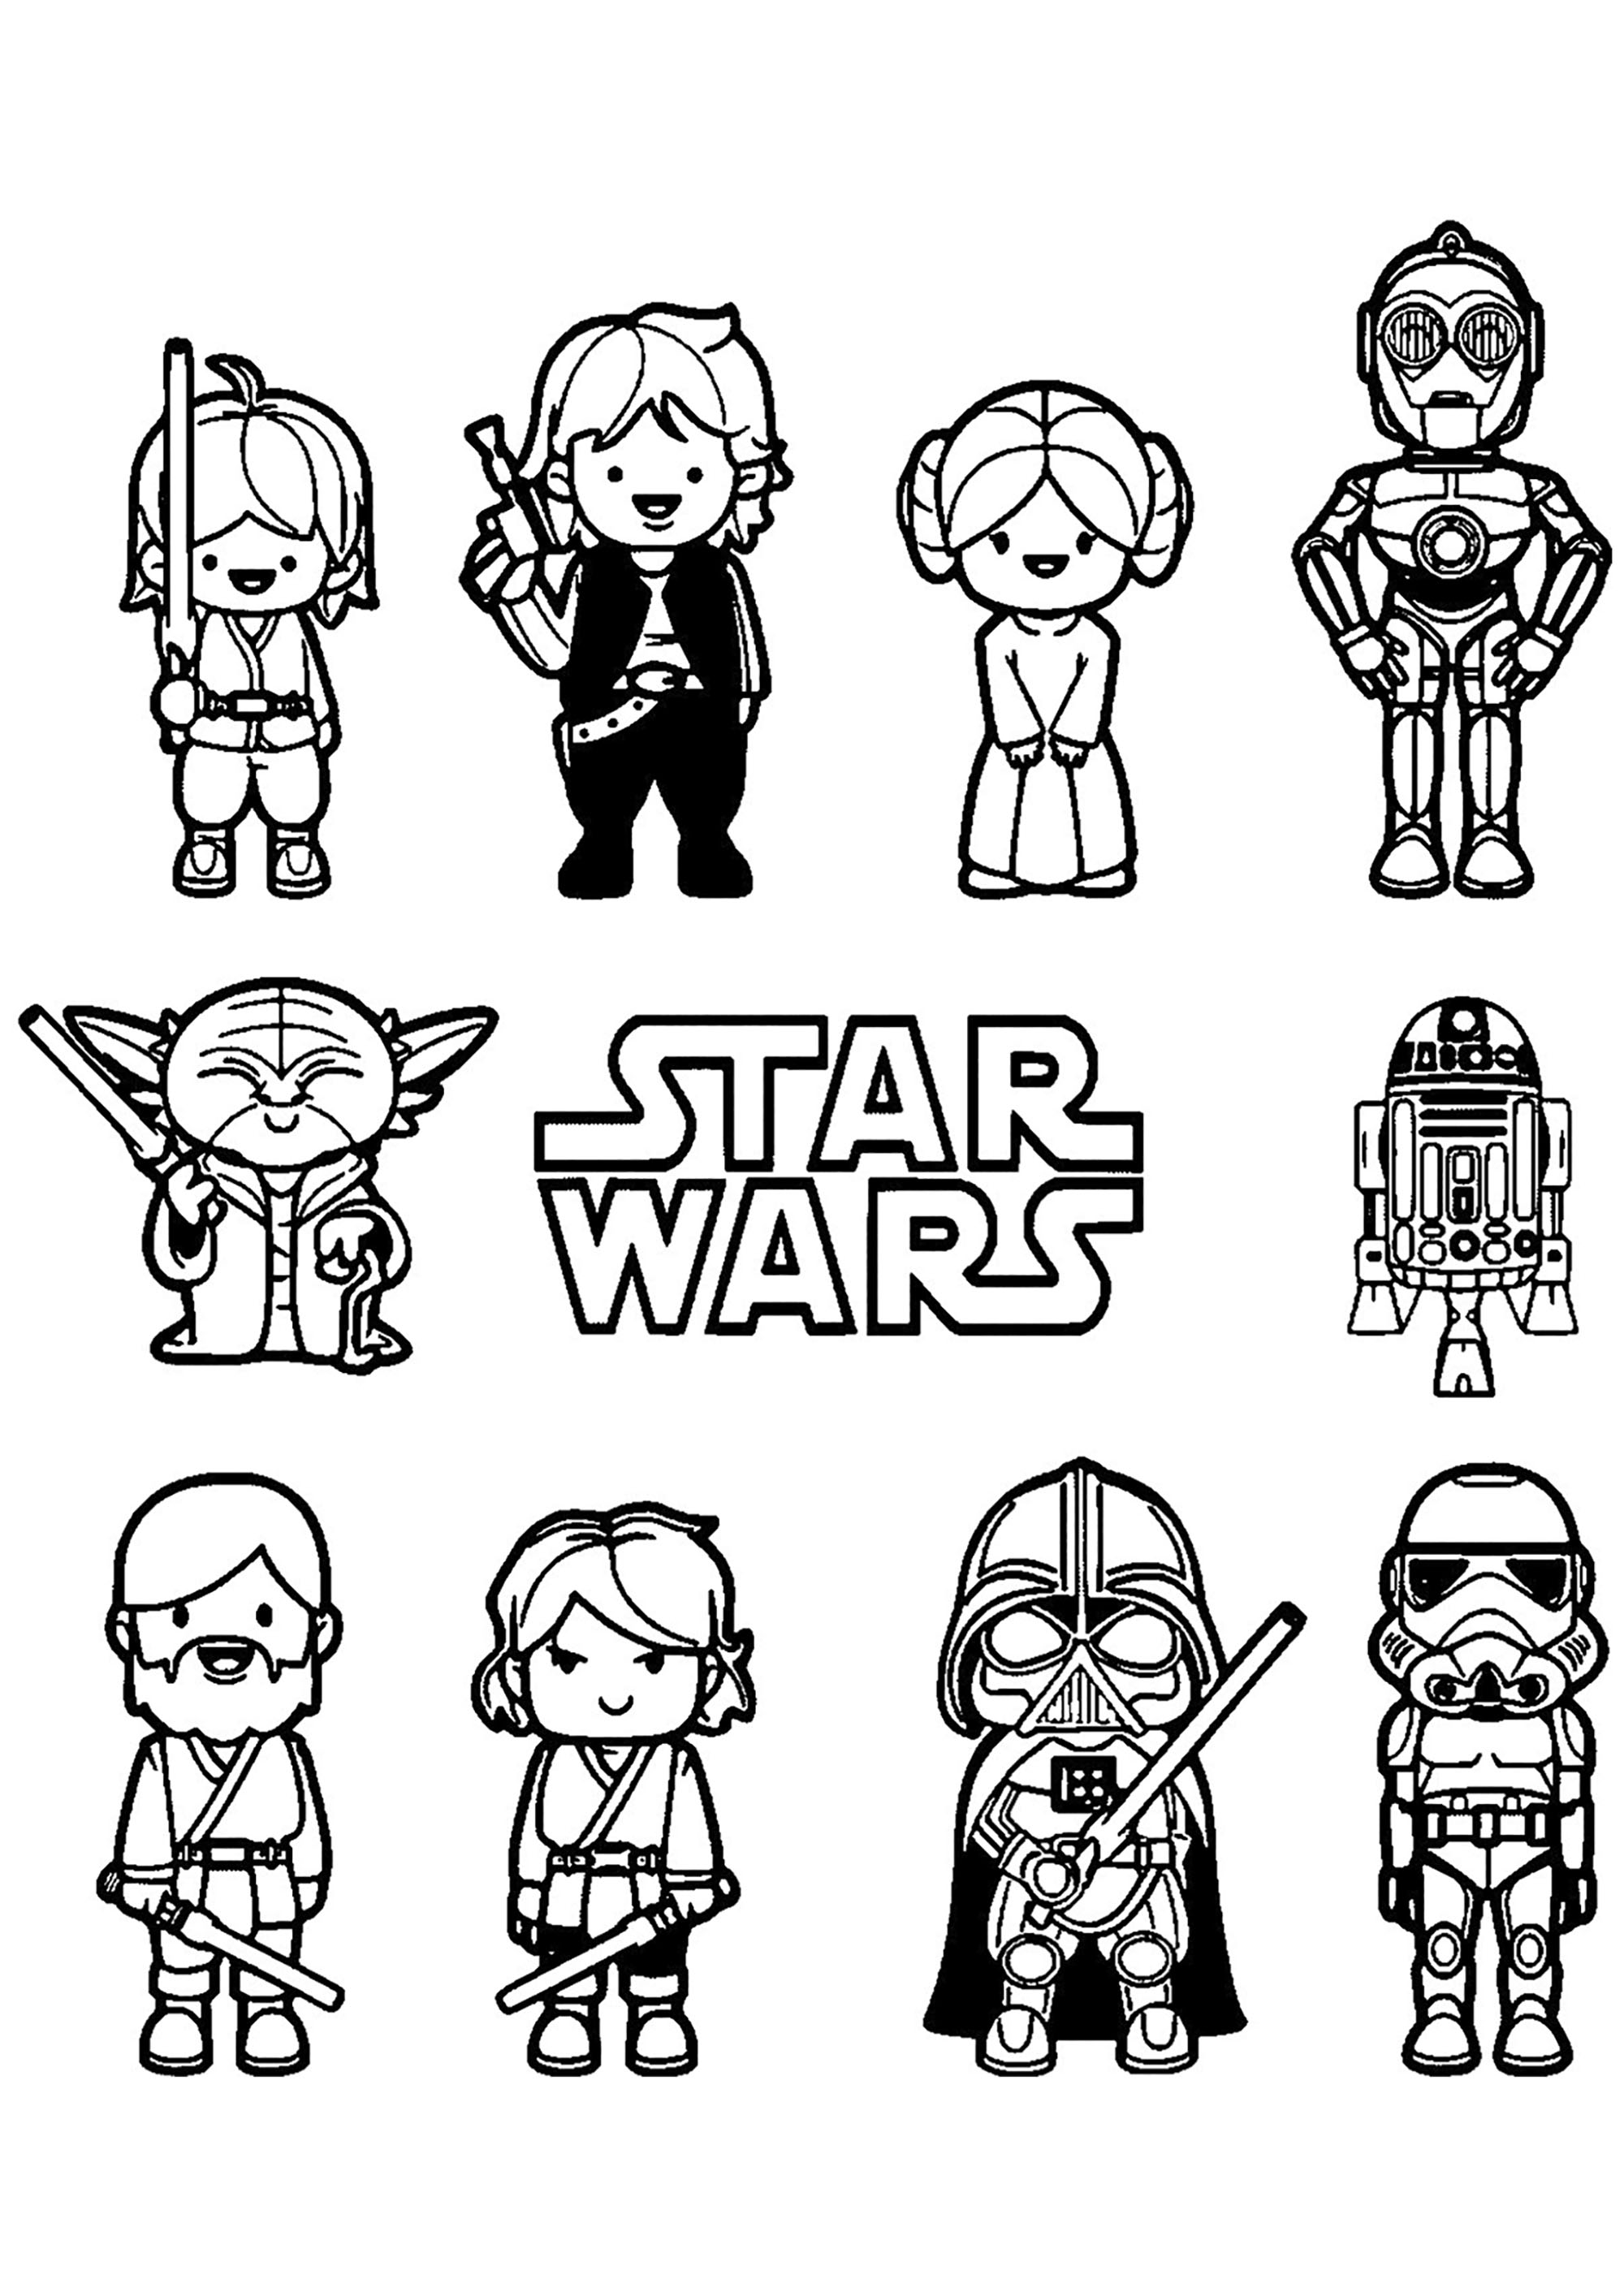 star wars coloring pages printable star wars printable coloring pages hubpages star printable coloring pages wars